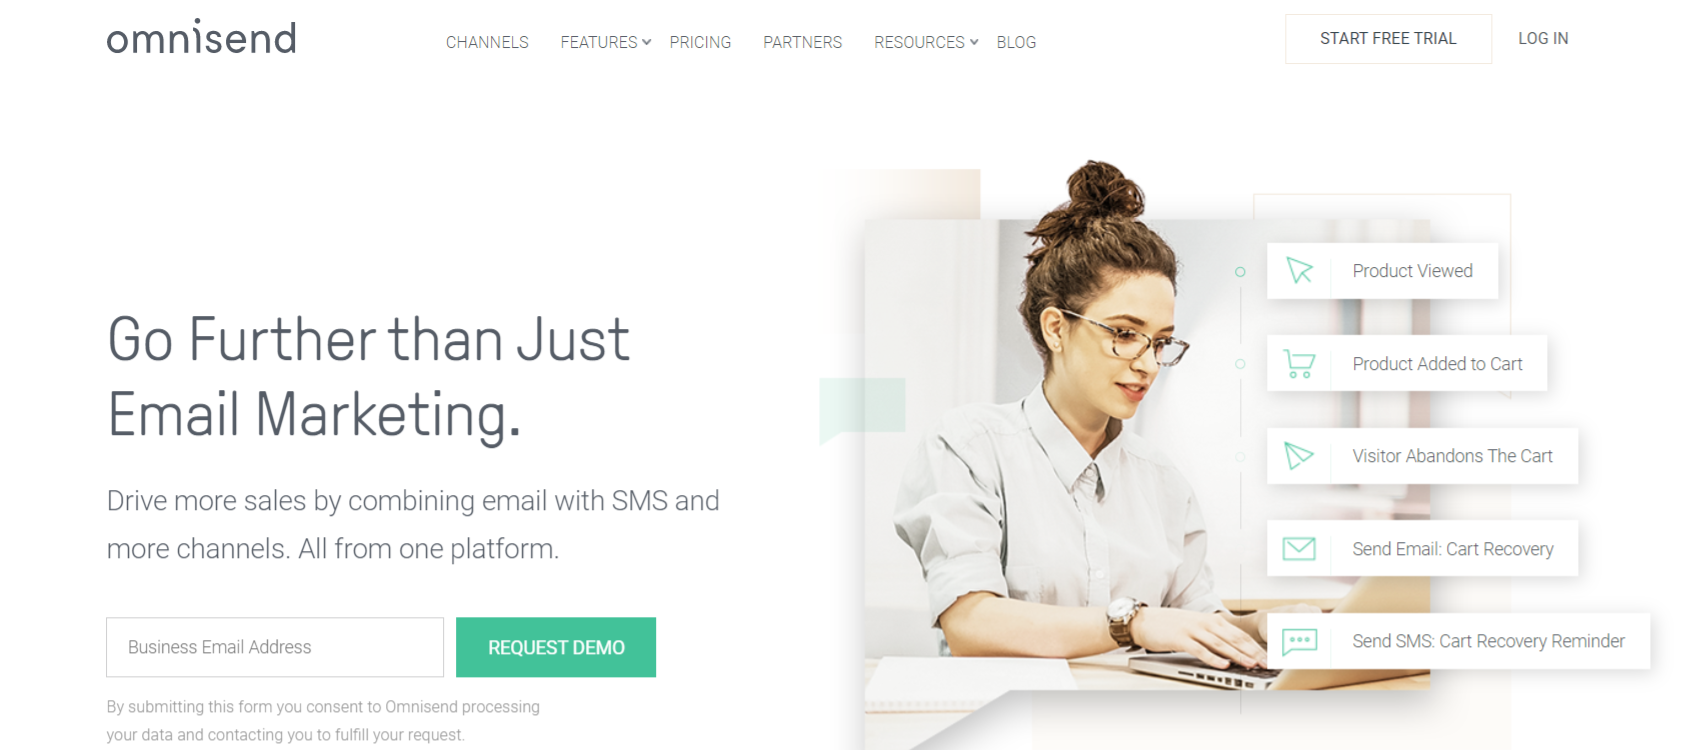 Omnisend: Sales and marketing tool